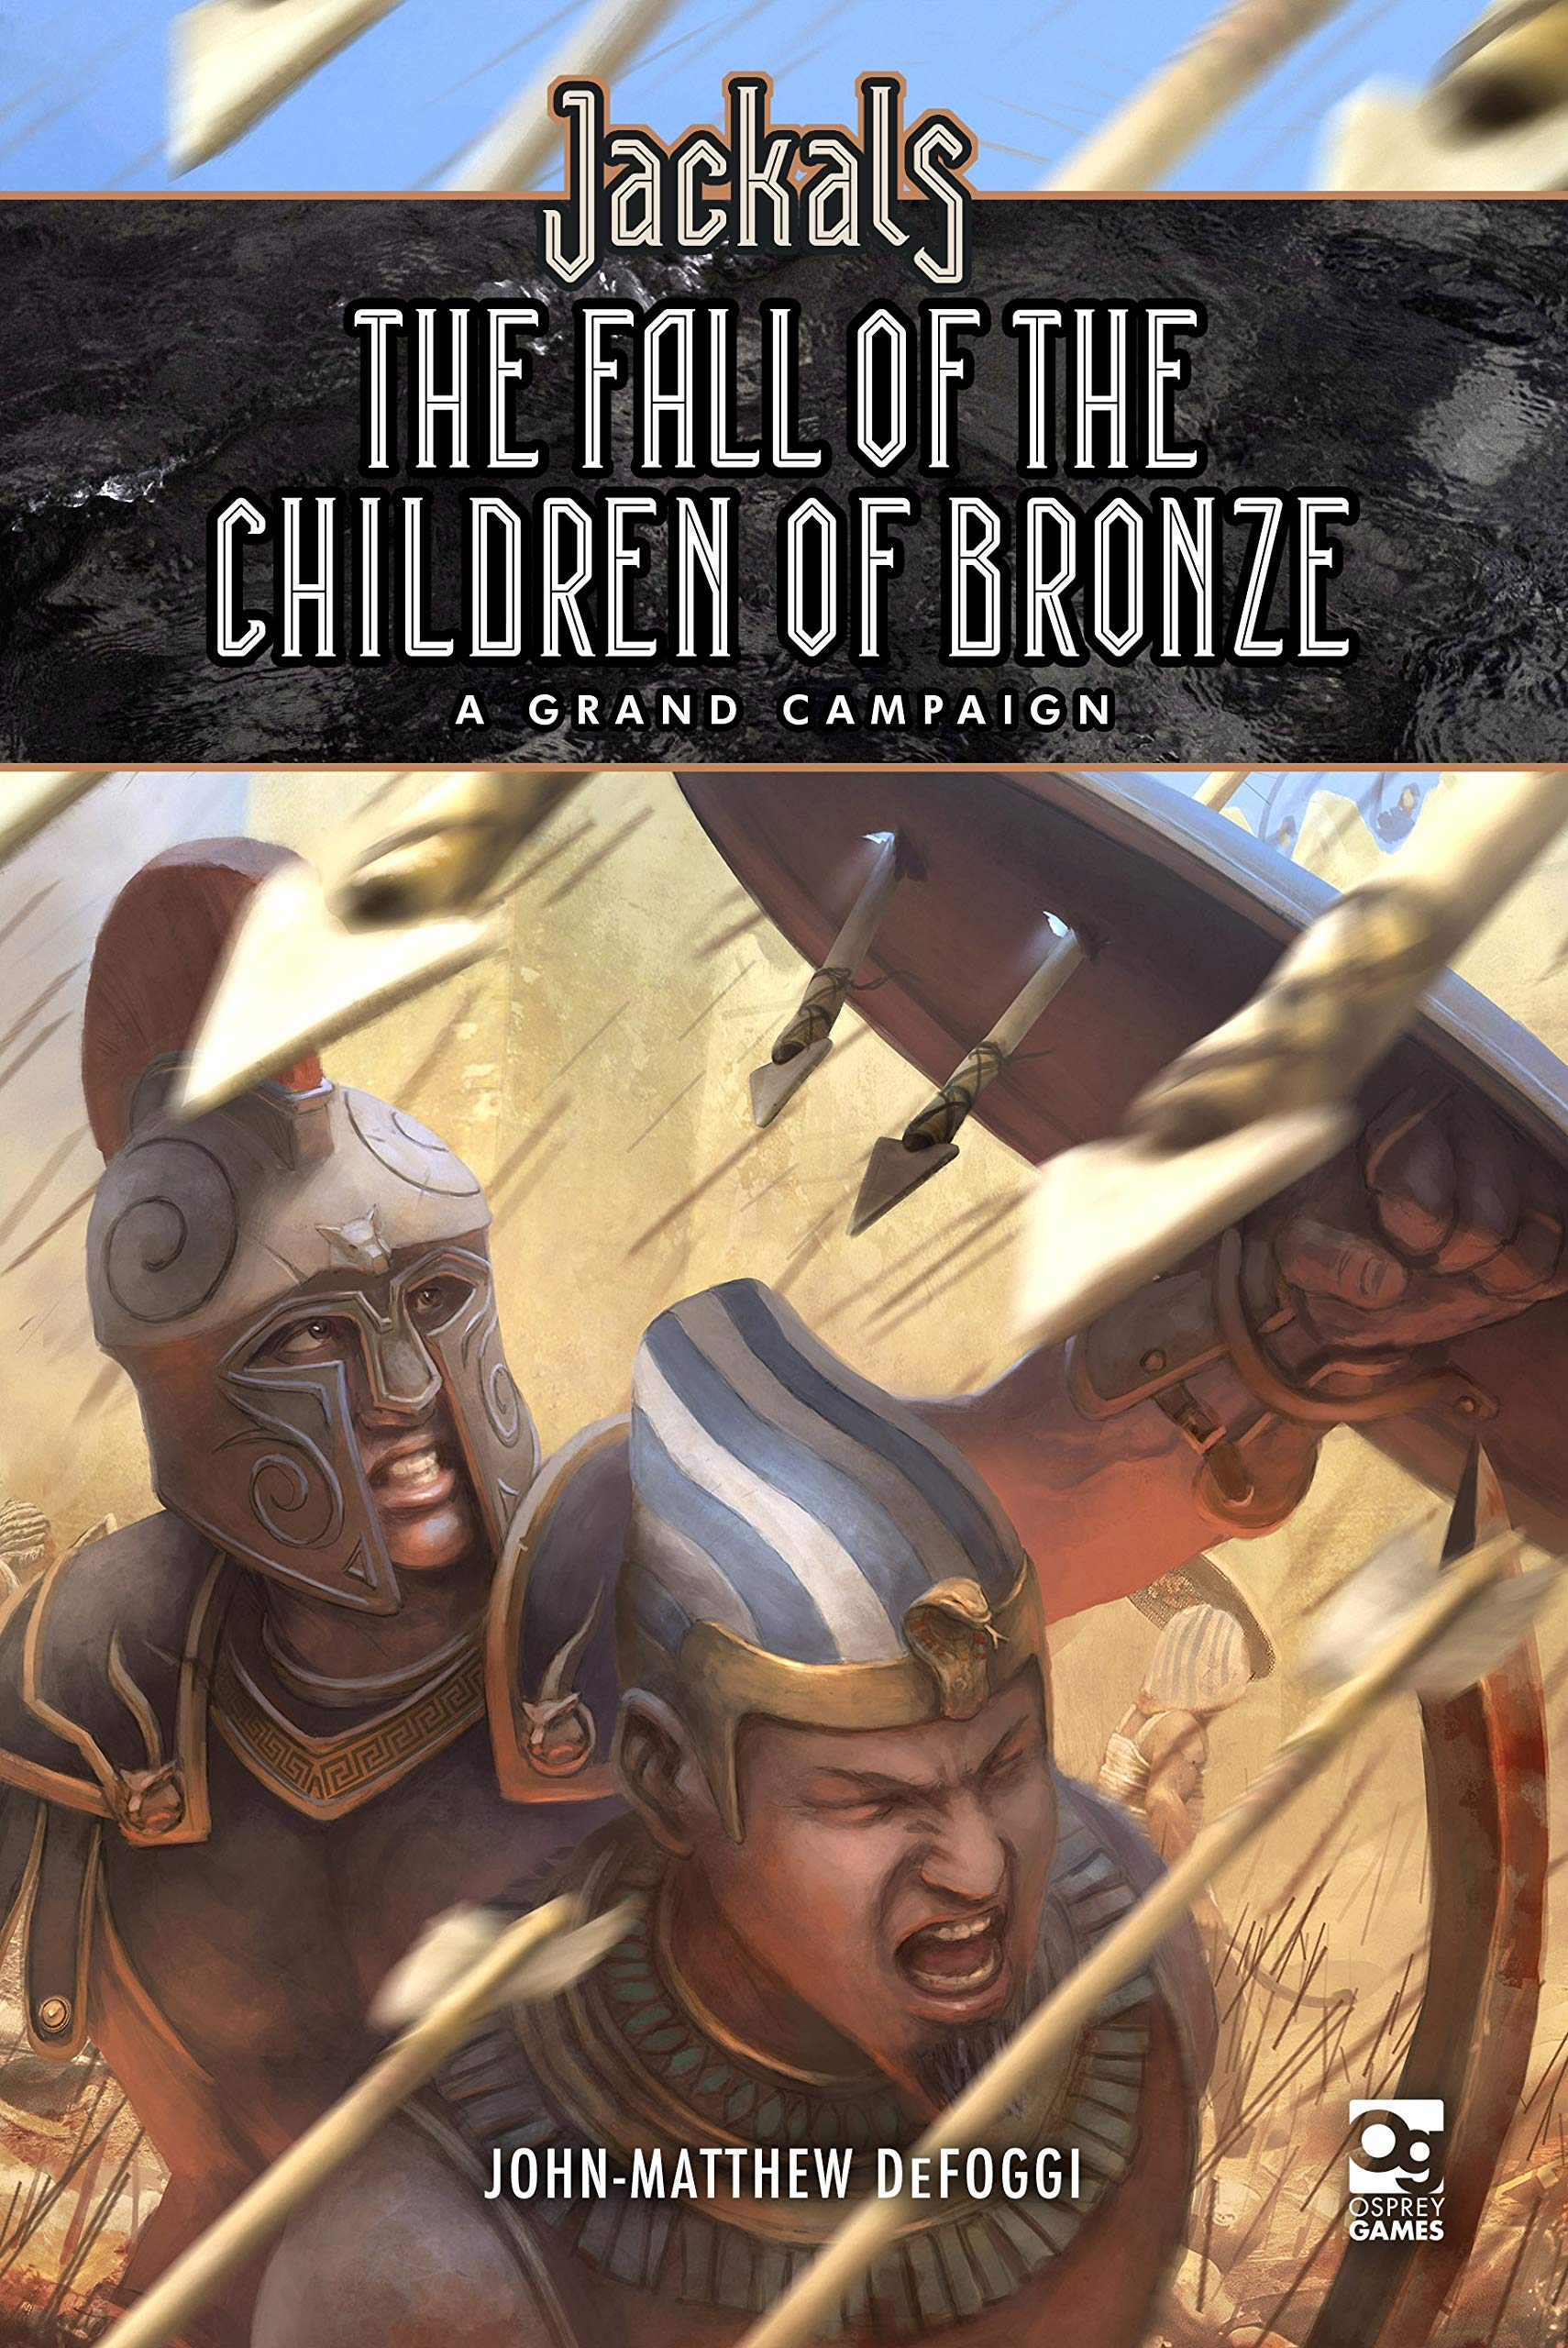 Jackals The Fall Of The Children Of Bronze - Osprey Games